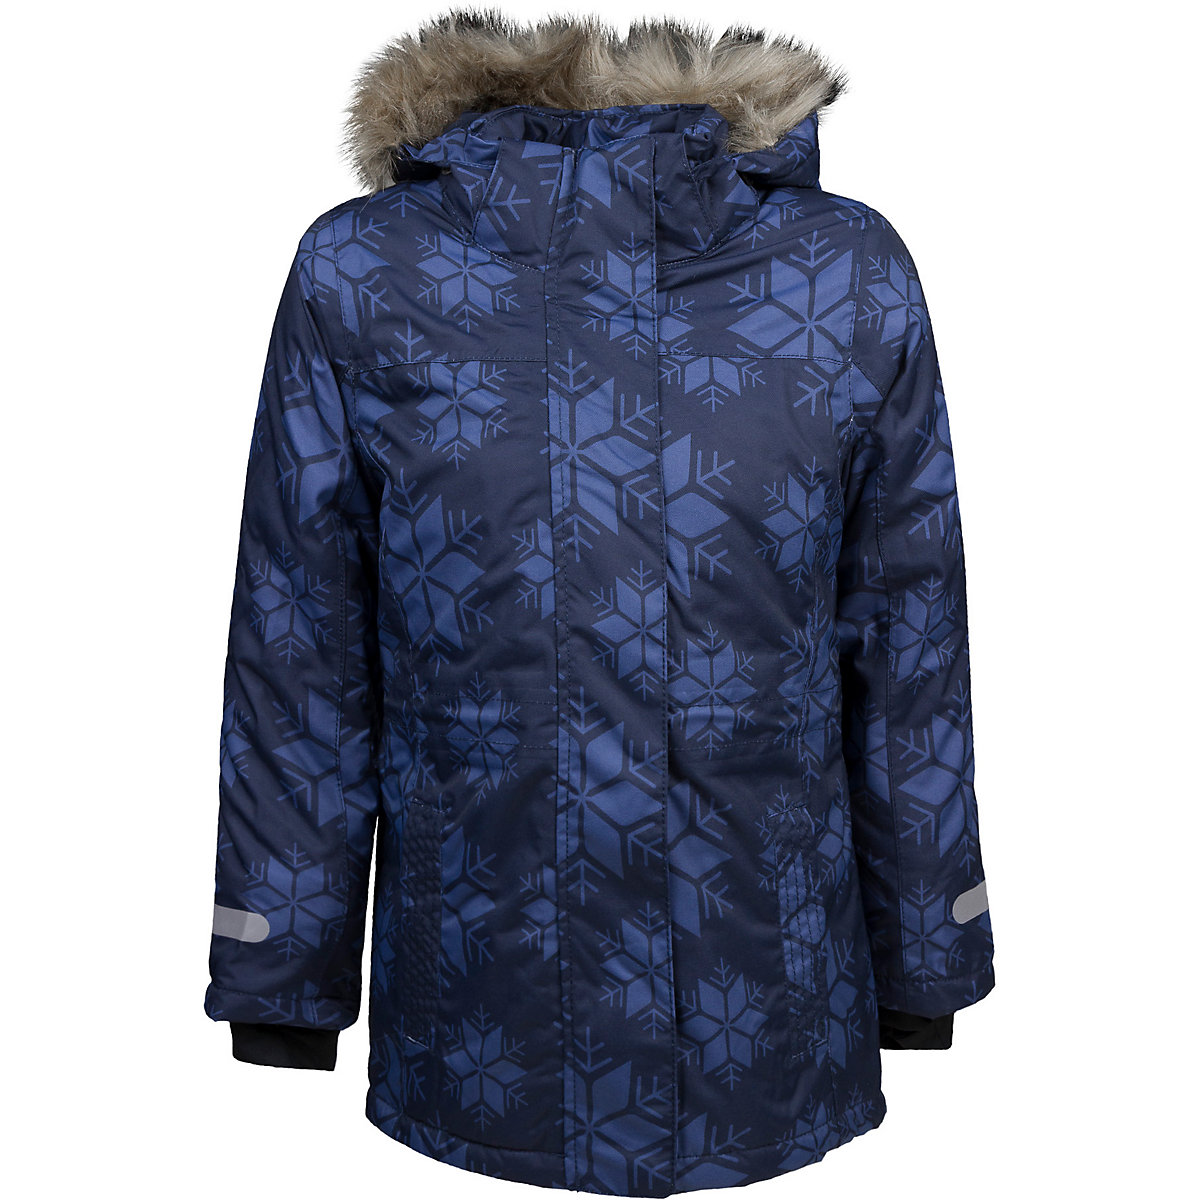 Jackets & Coats TICKET TO HEAVEN for girls 8954449 Jacket Coat Denim Cardigan Warm Children clothes Kids icebear 2018 new men s winter jacket warm detachable hat male short coat fashion casual apparel man brand clothing mwd18813d